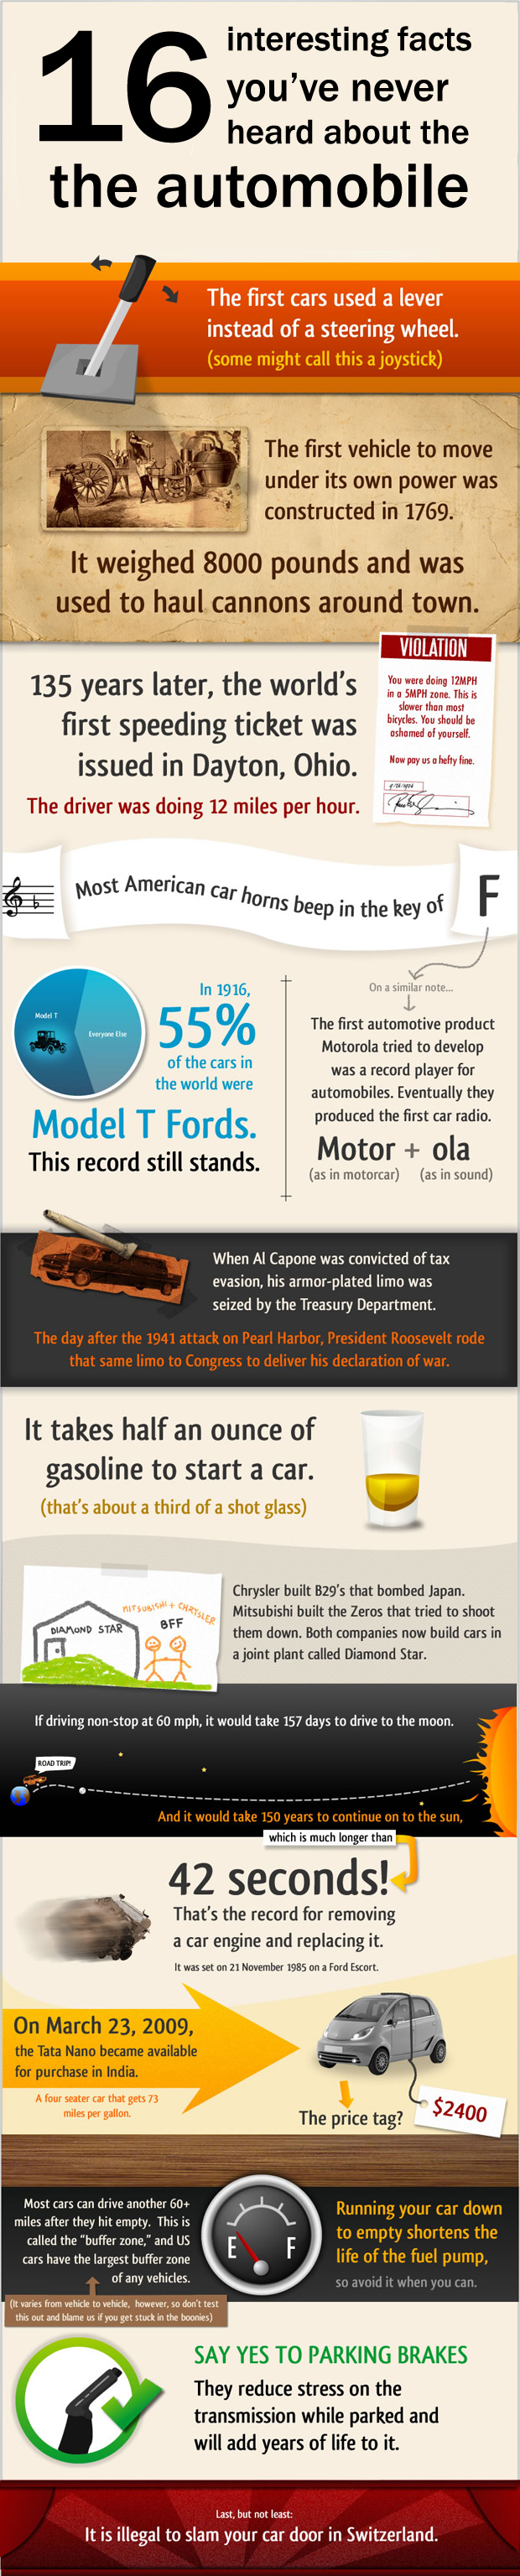 Car_facts_history